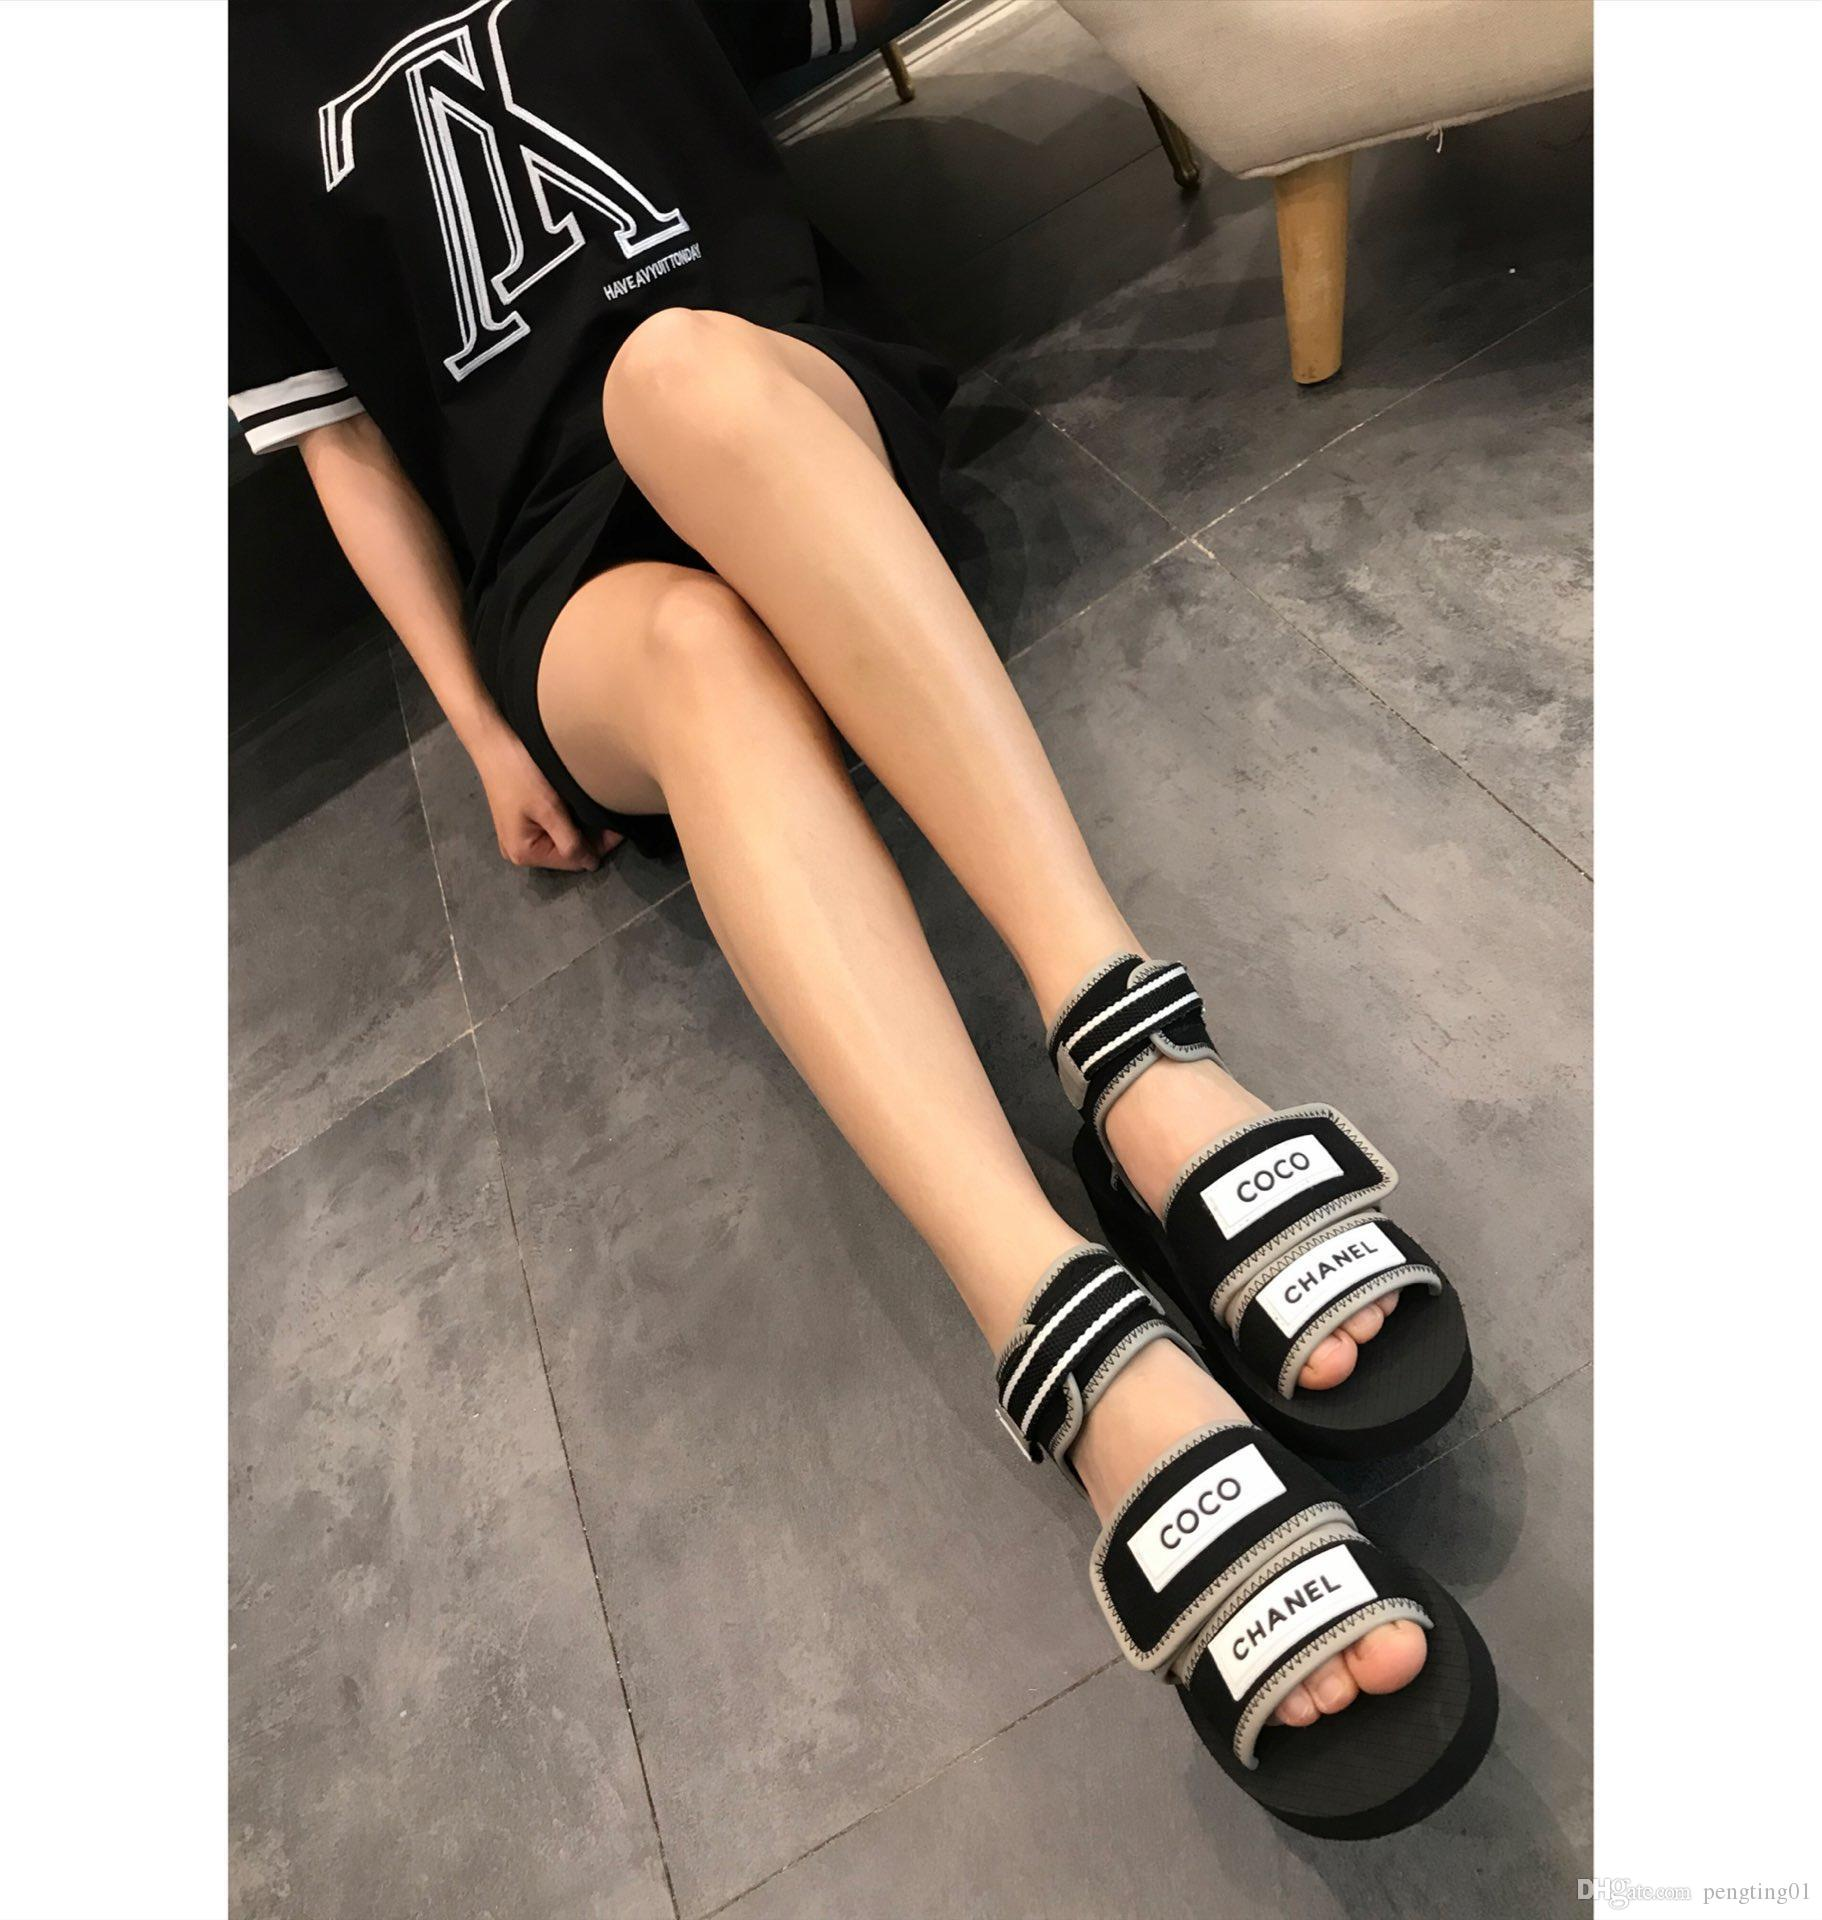 b393d9367b942 The Latest Luxury Women'S Fashion Leather Sandals Eye Catching Gladiator  Style Designer Leather Outsole Perfect Flat Canvas Salt Water Sandals  Bridesmaid ...